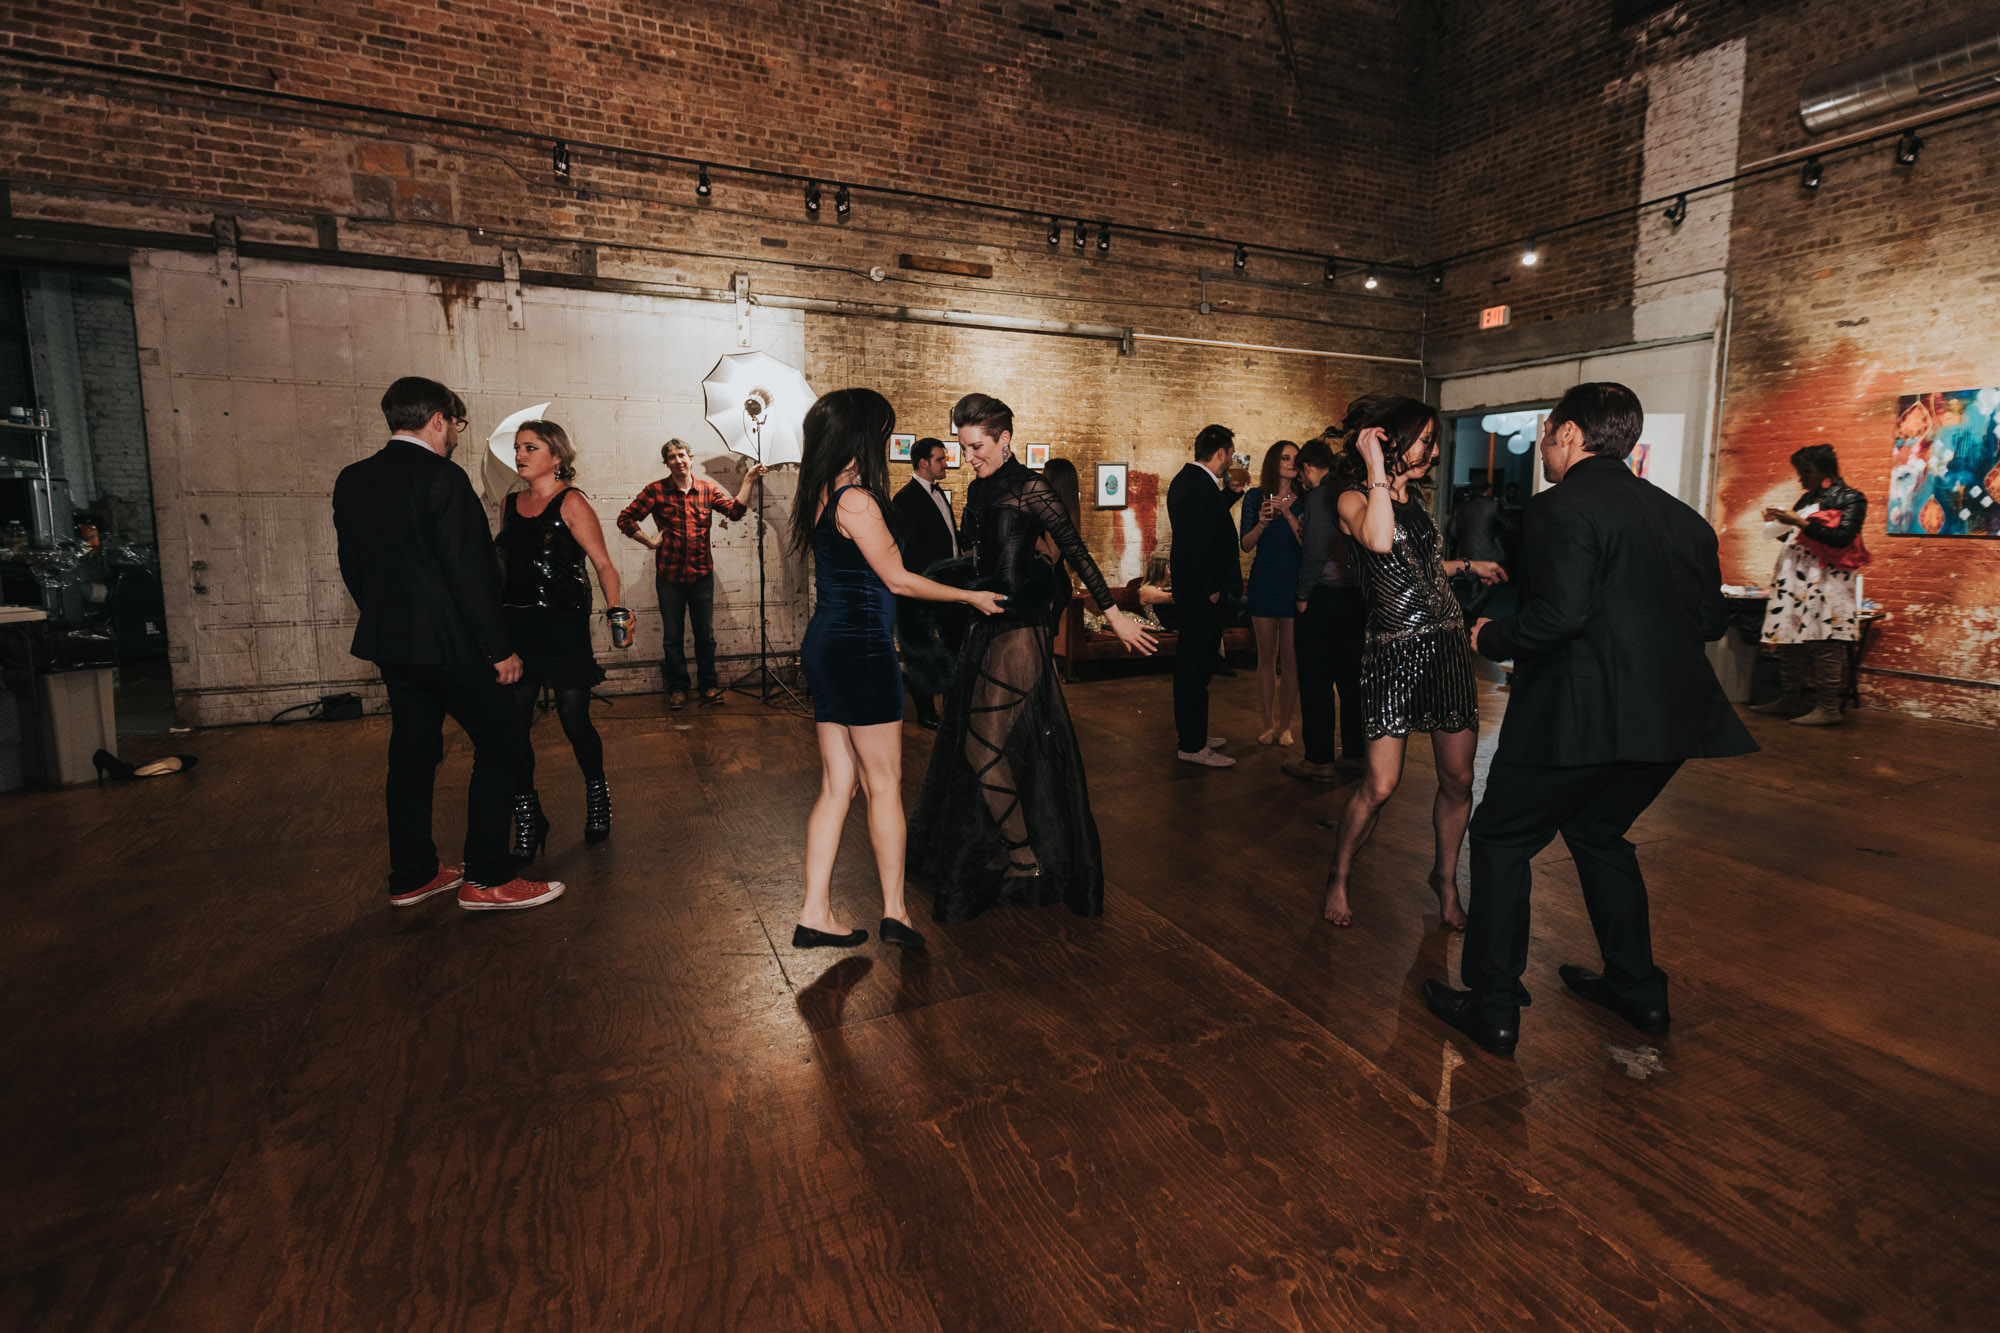 Chicago Event Photography - 2018-12-01_Devin's 40th Birthday Bash_11.jpg